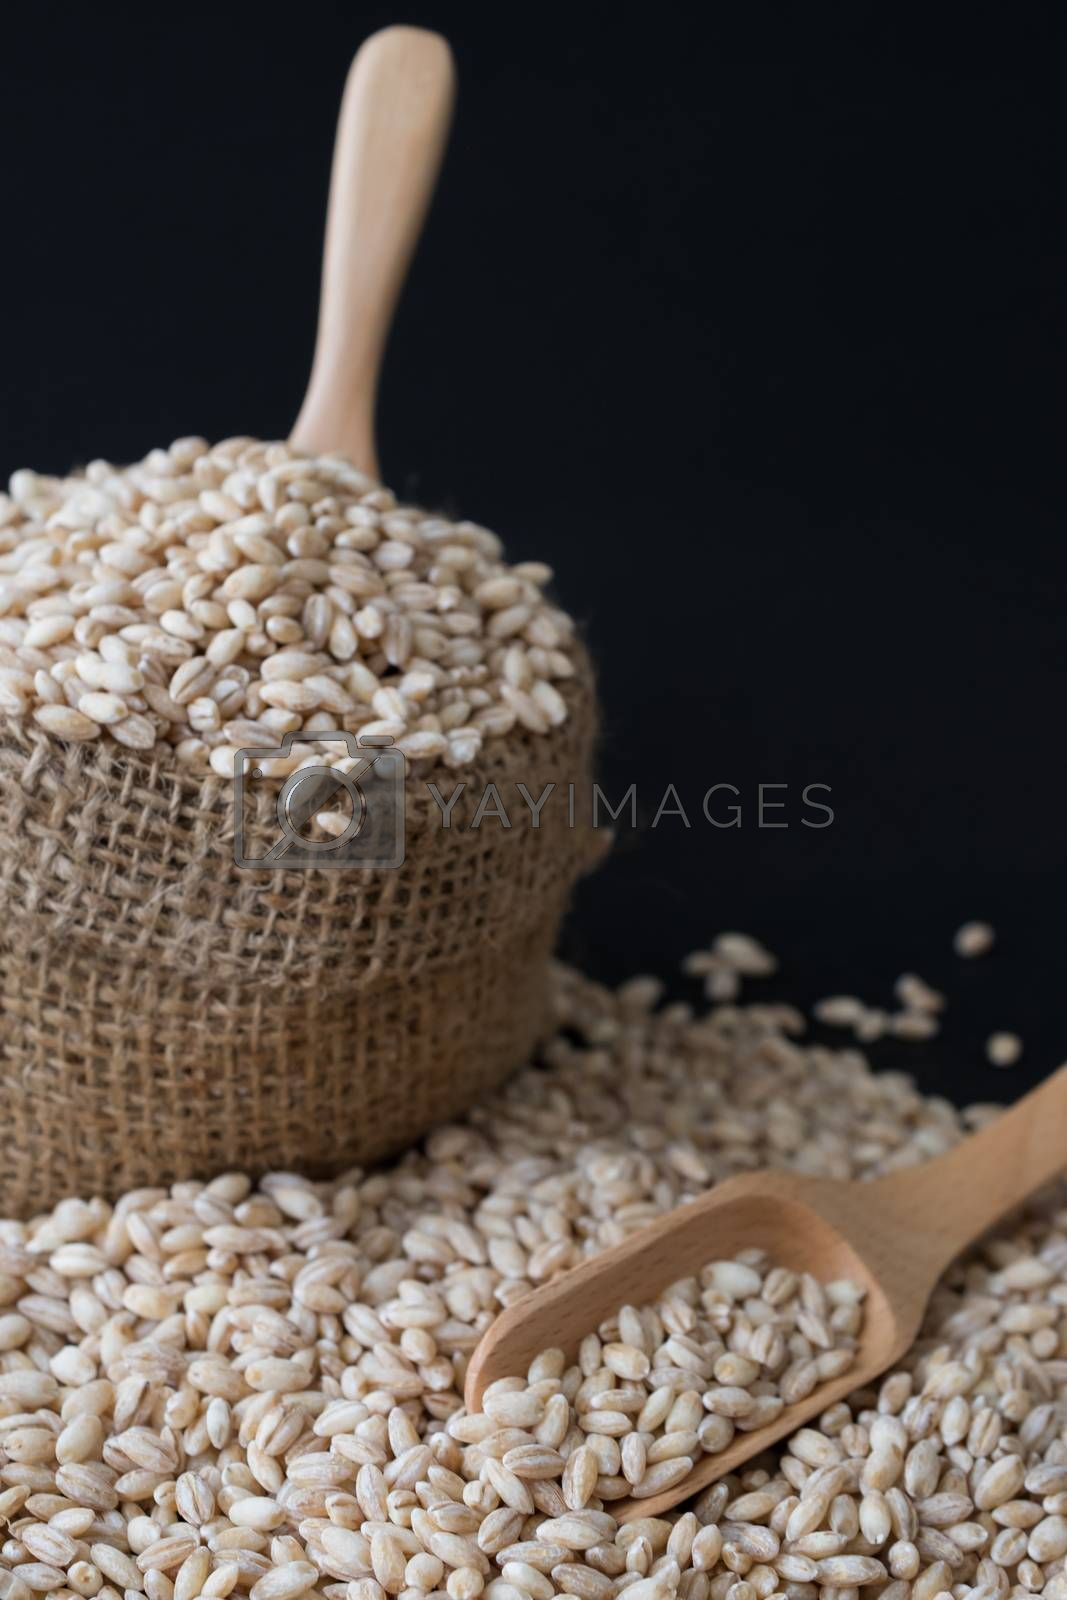 pearls barley grain seed on background